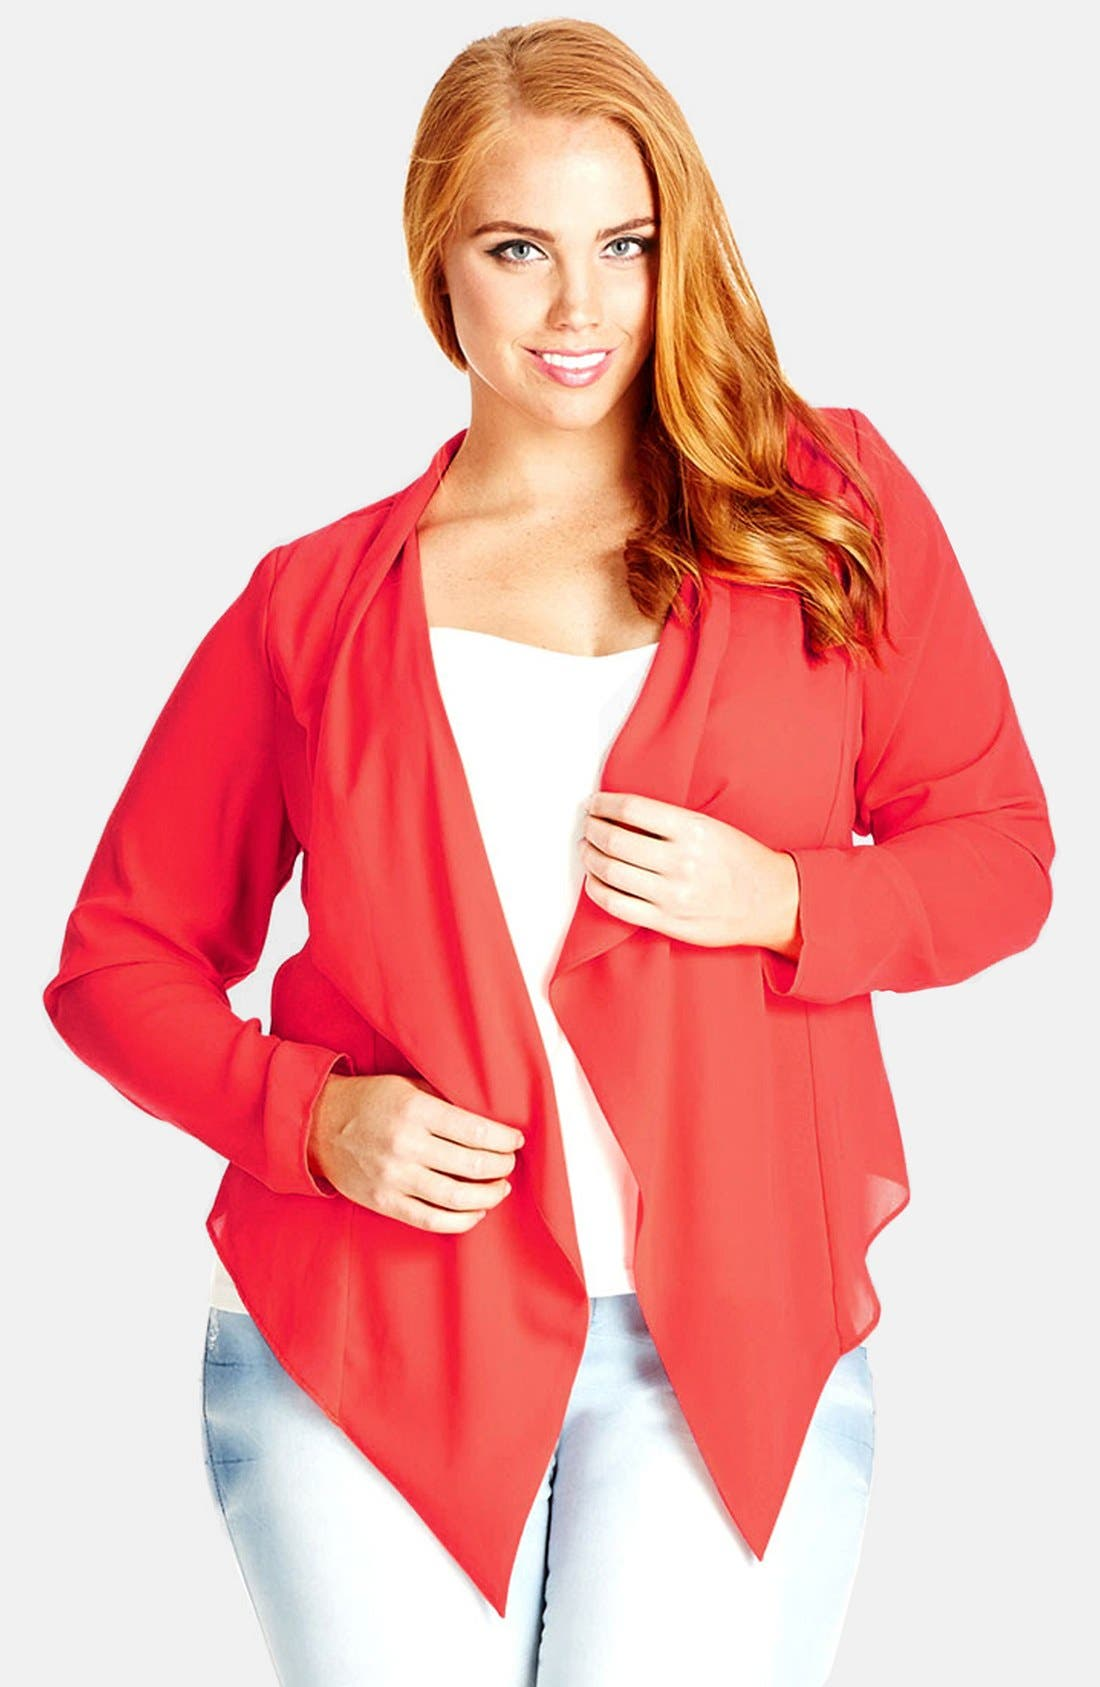 Alternate Image 1 Selected - City Chic Crossover Back Drape Front Jacket (Plus Size)